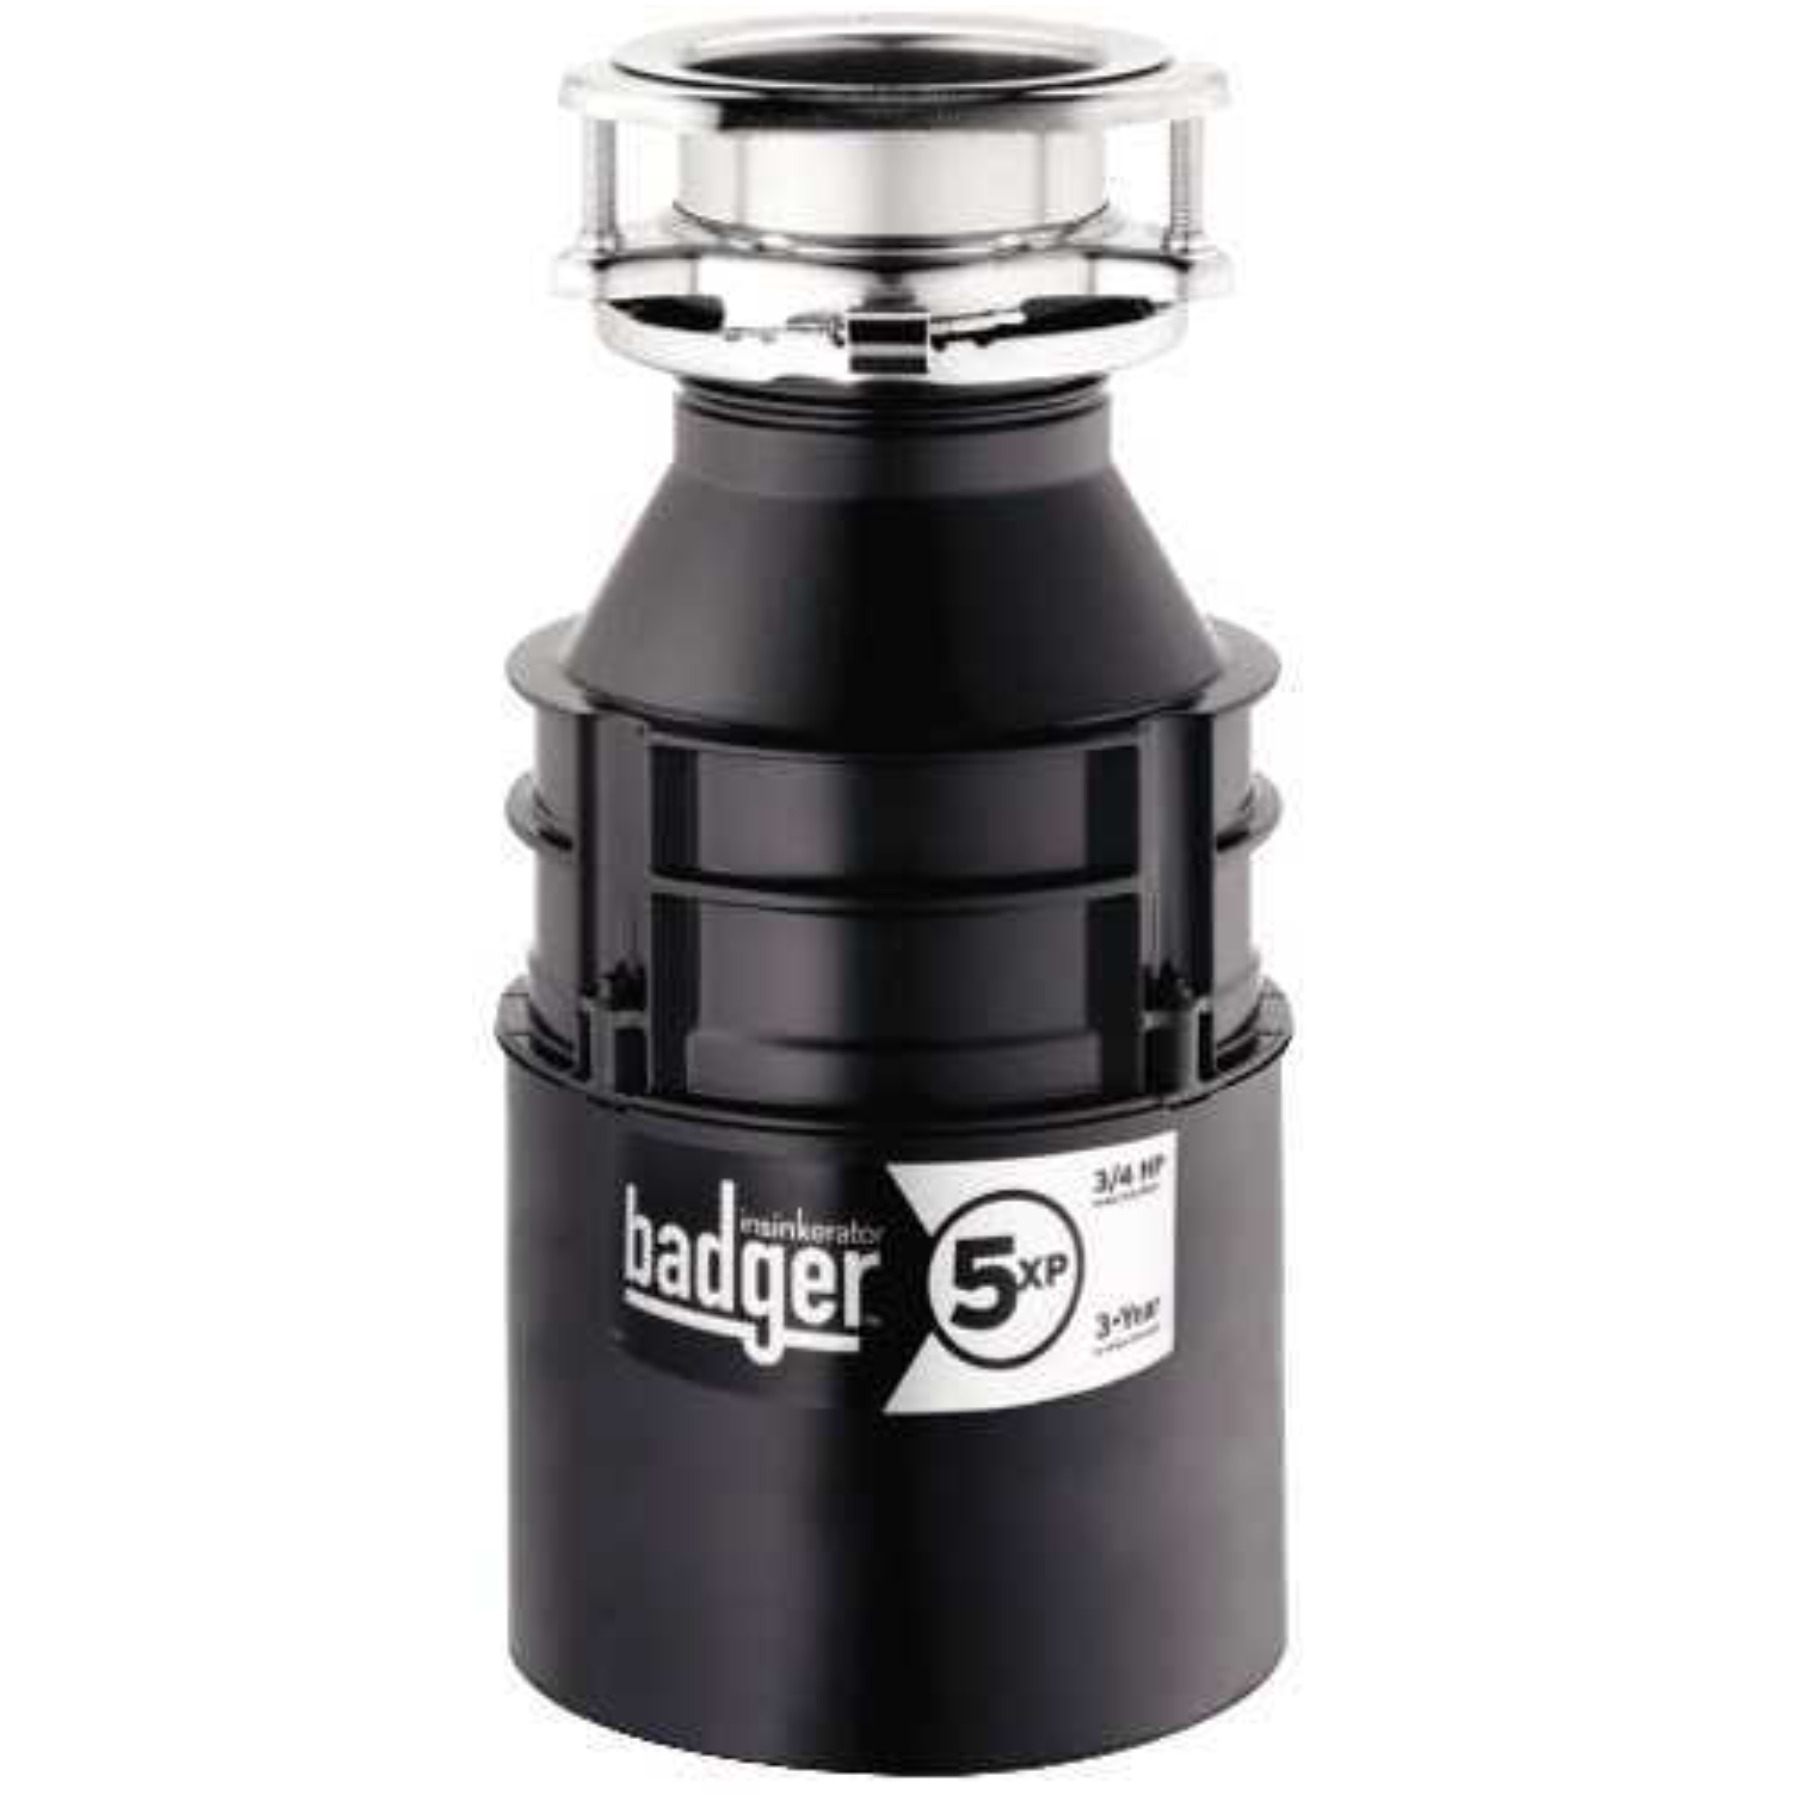 IN-SINK-ERATOR� BADGER� 5XP� GARBAGE DISPOSAL, 3/4 HP